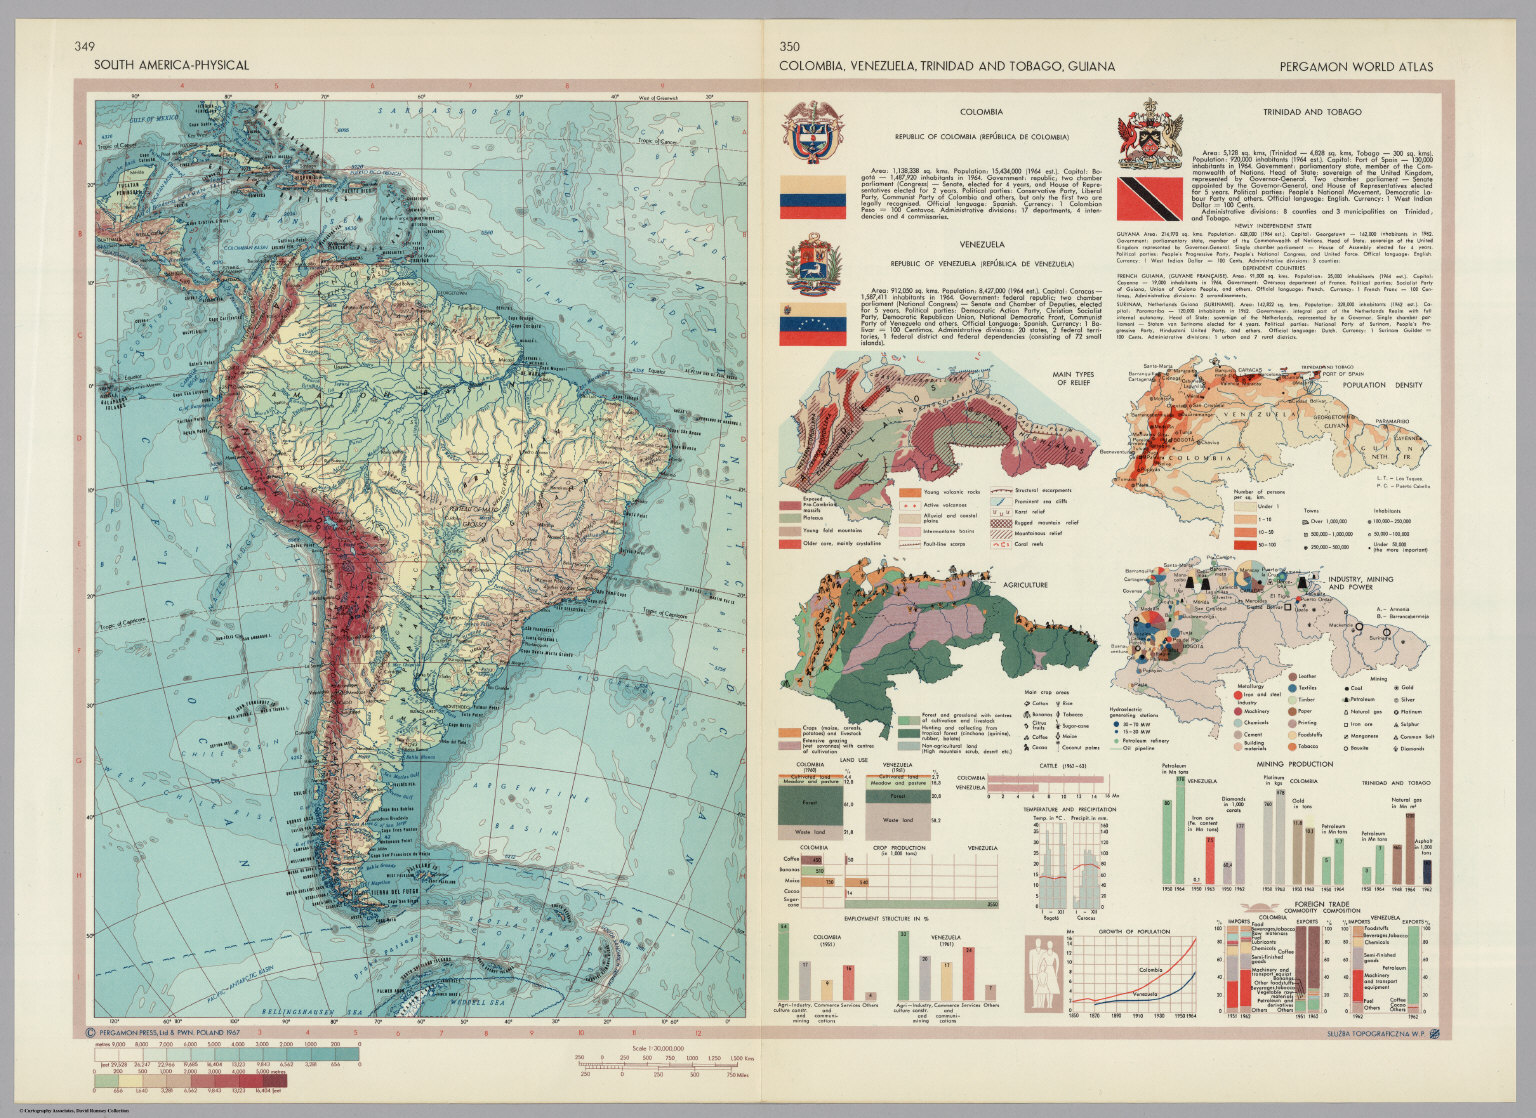 South america physical colombia venezuela trinidad and tobago south america physical colombia venezuela trinidad and tobago guiana pergamon world gumiabroncs Image collections